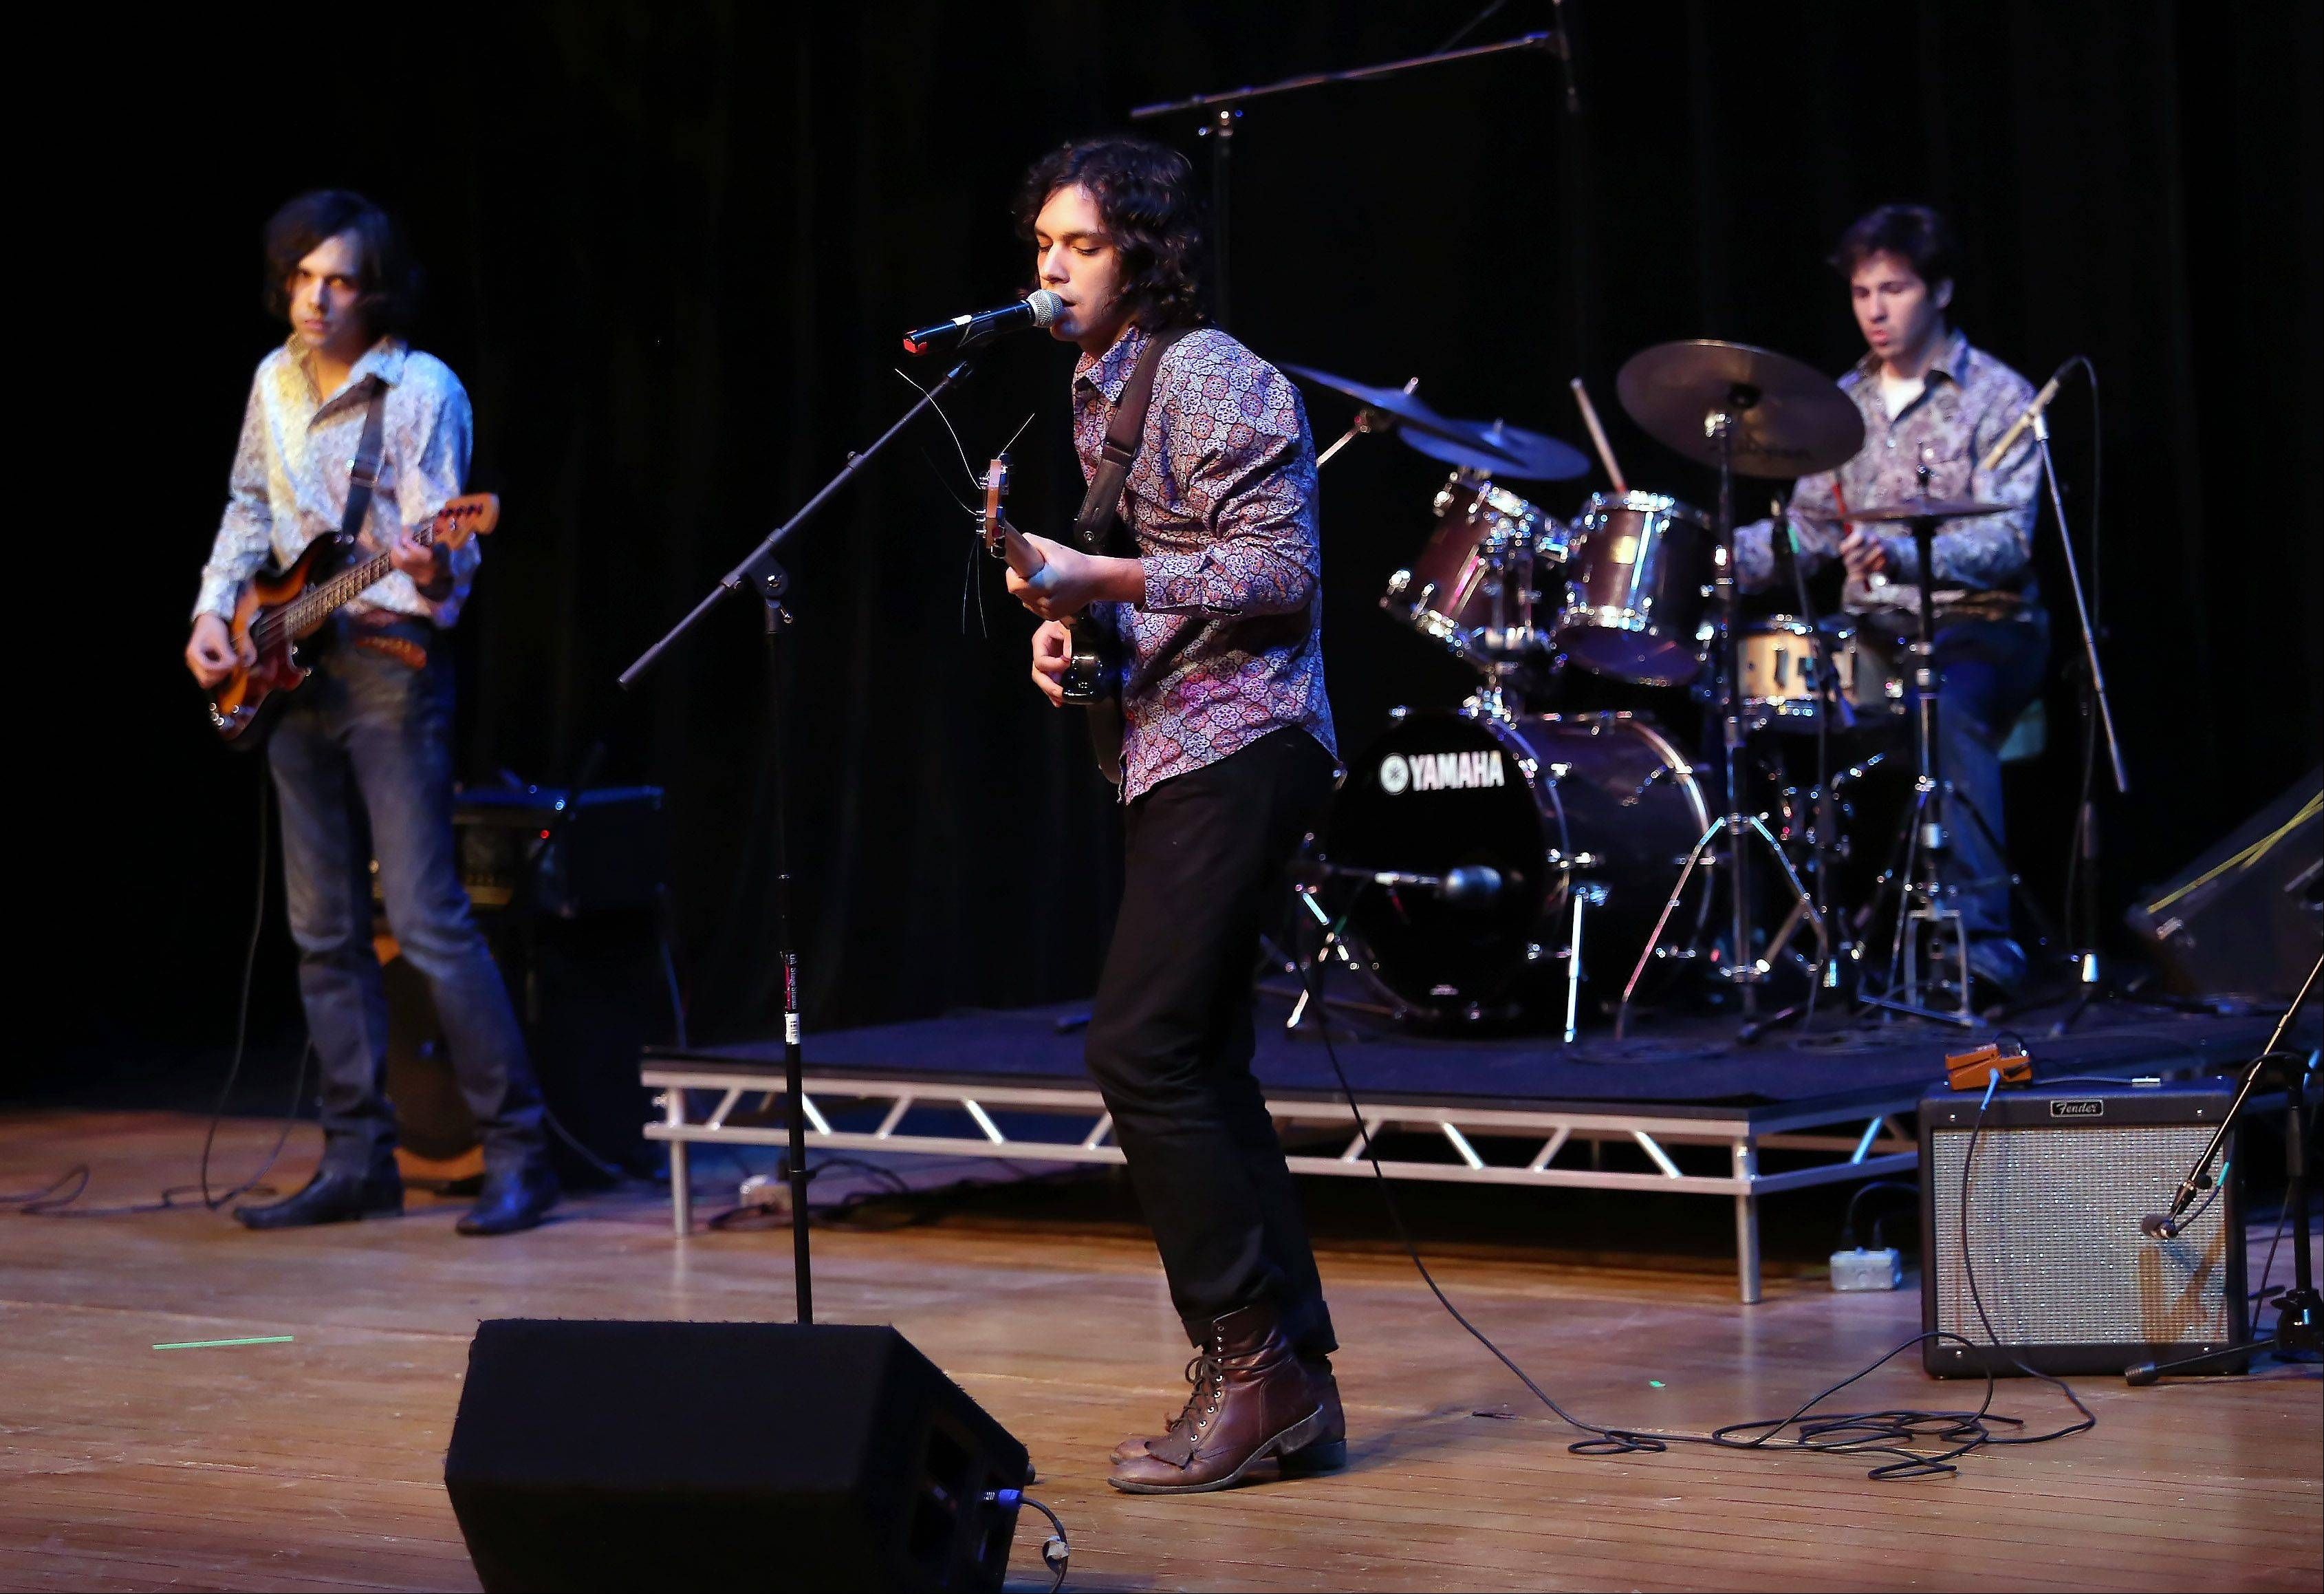 The band Viper Fever performs during Suburban Chicago's Got Talent competition Sunday night at the Metropolis Performing Arts Centre in Arlington Heights. The summer long talent contest is presented by the Daily Herald and sponsored by the Arlington Heights Chamber of Commerce.